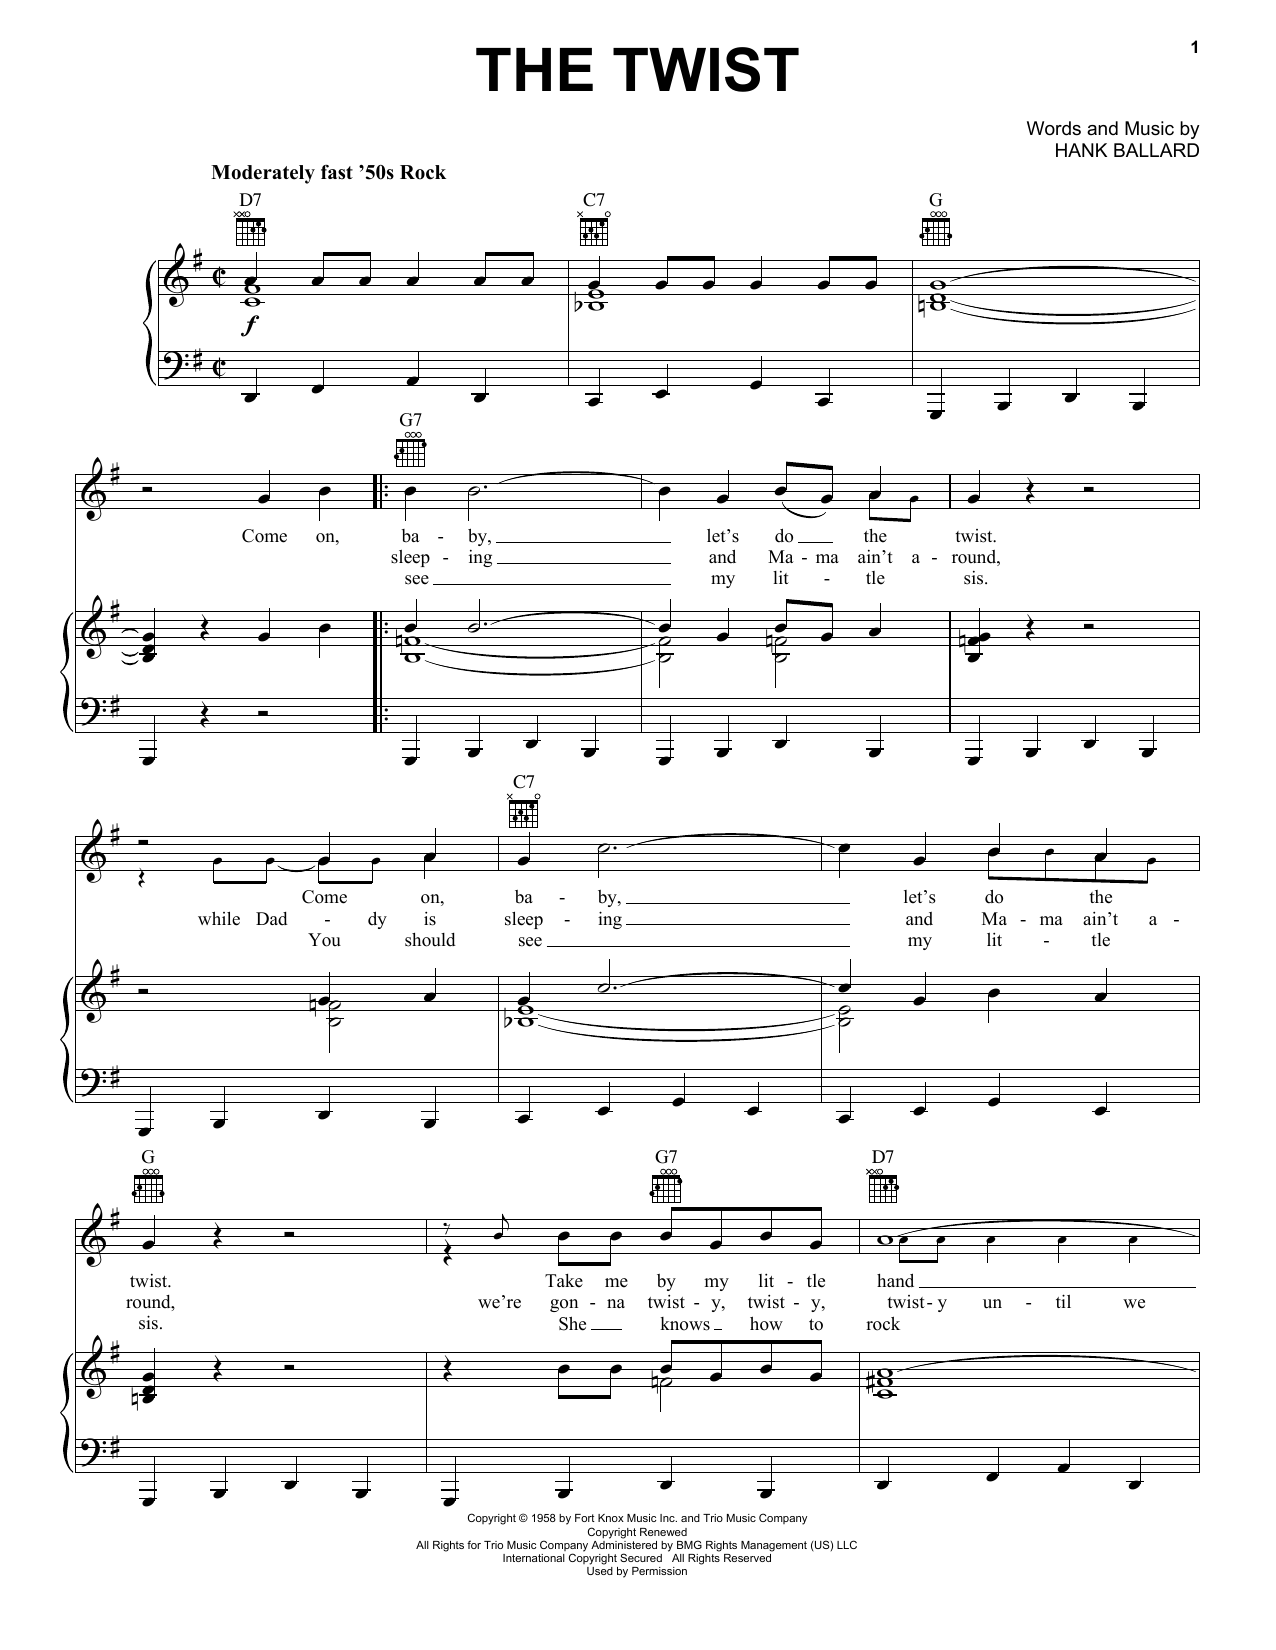 Chubby Checker The Twist sheet music notes and chords. Download Printable PDF.